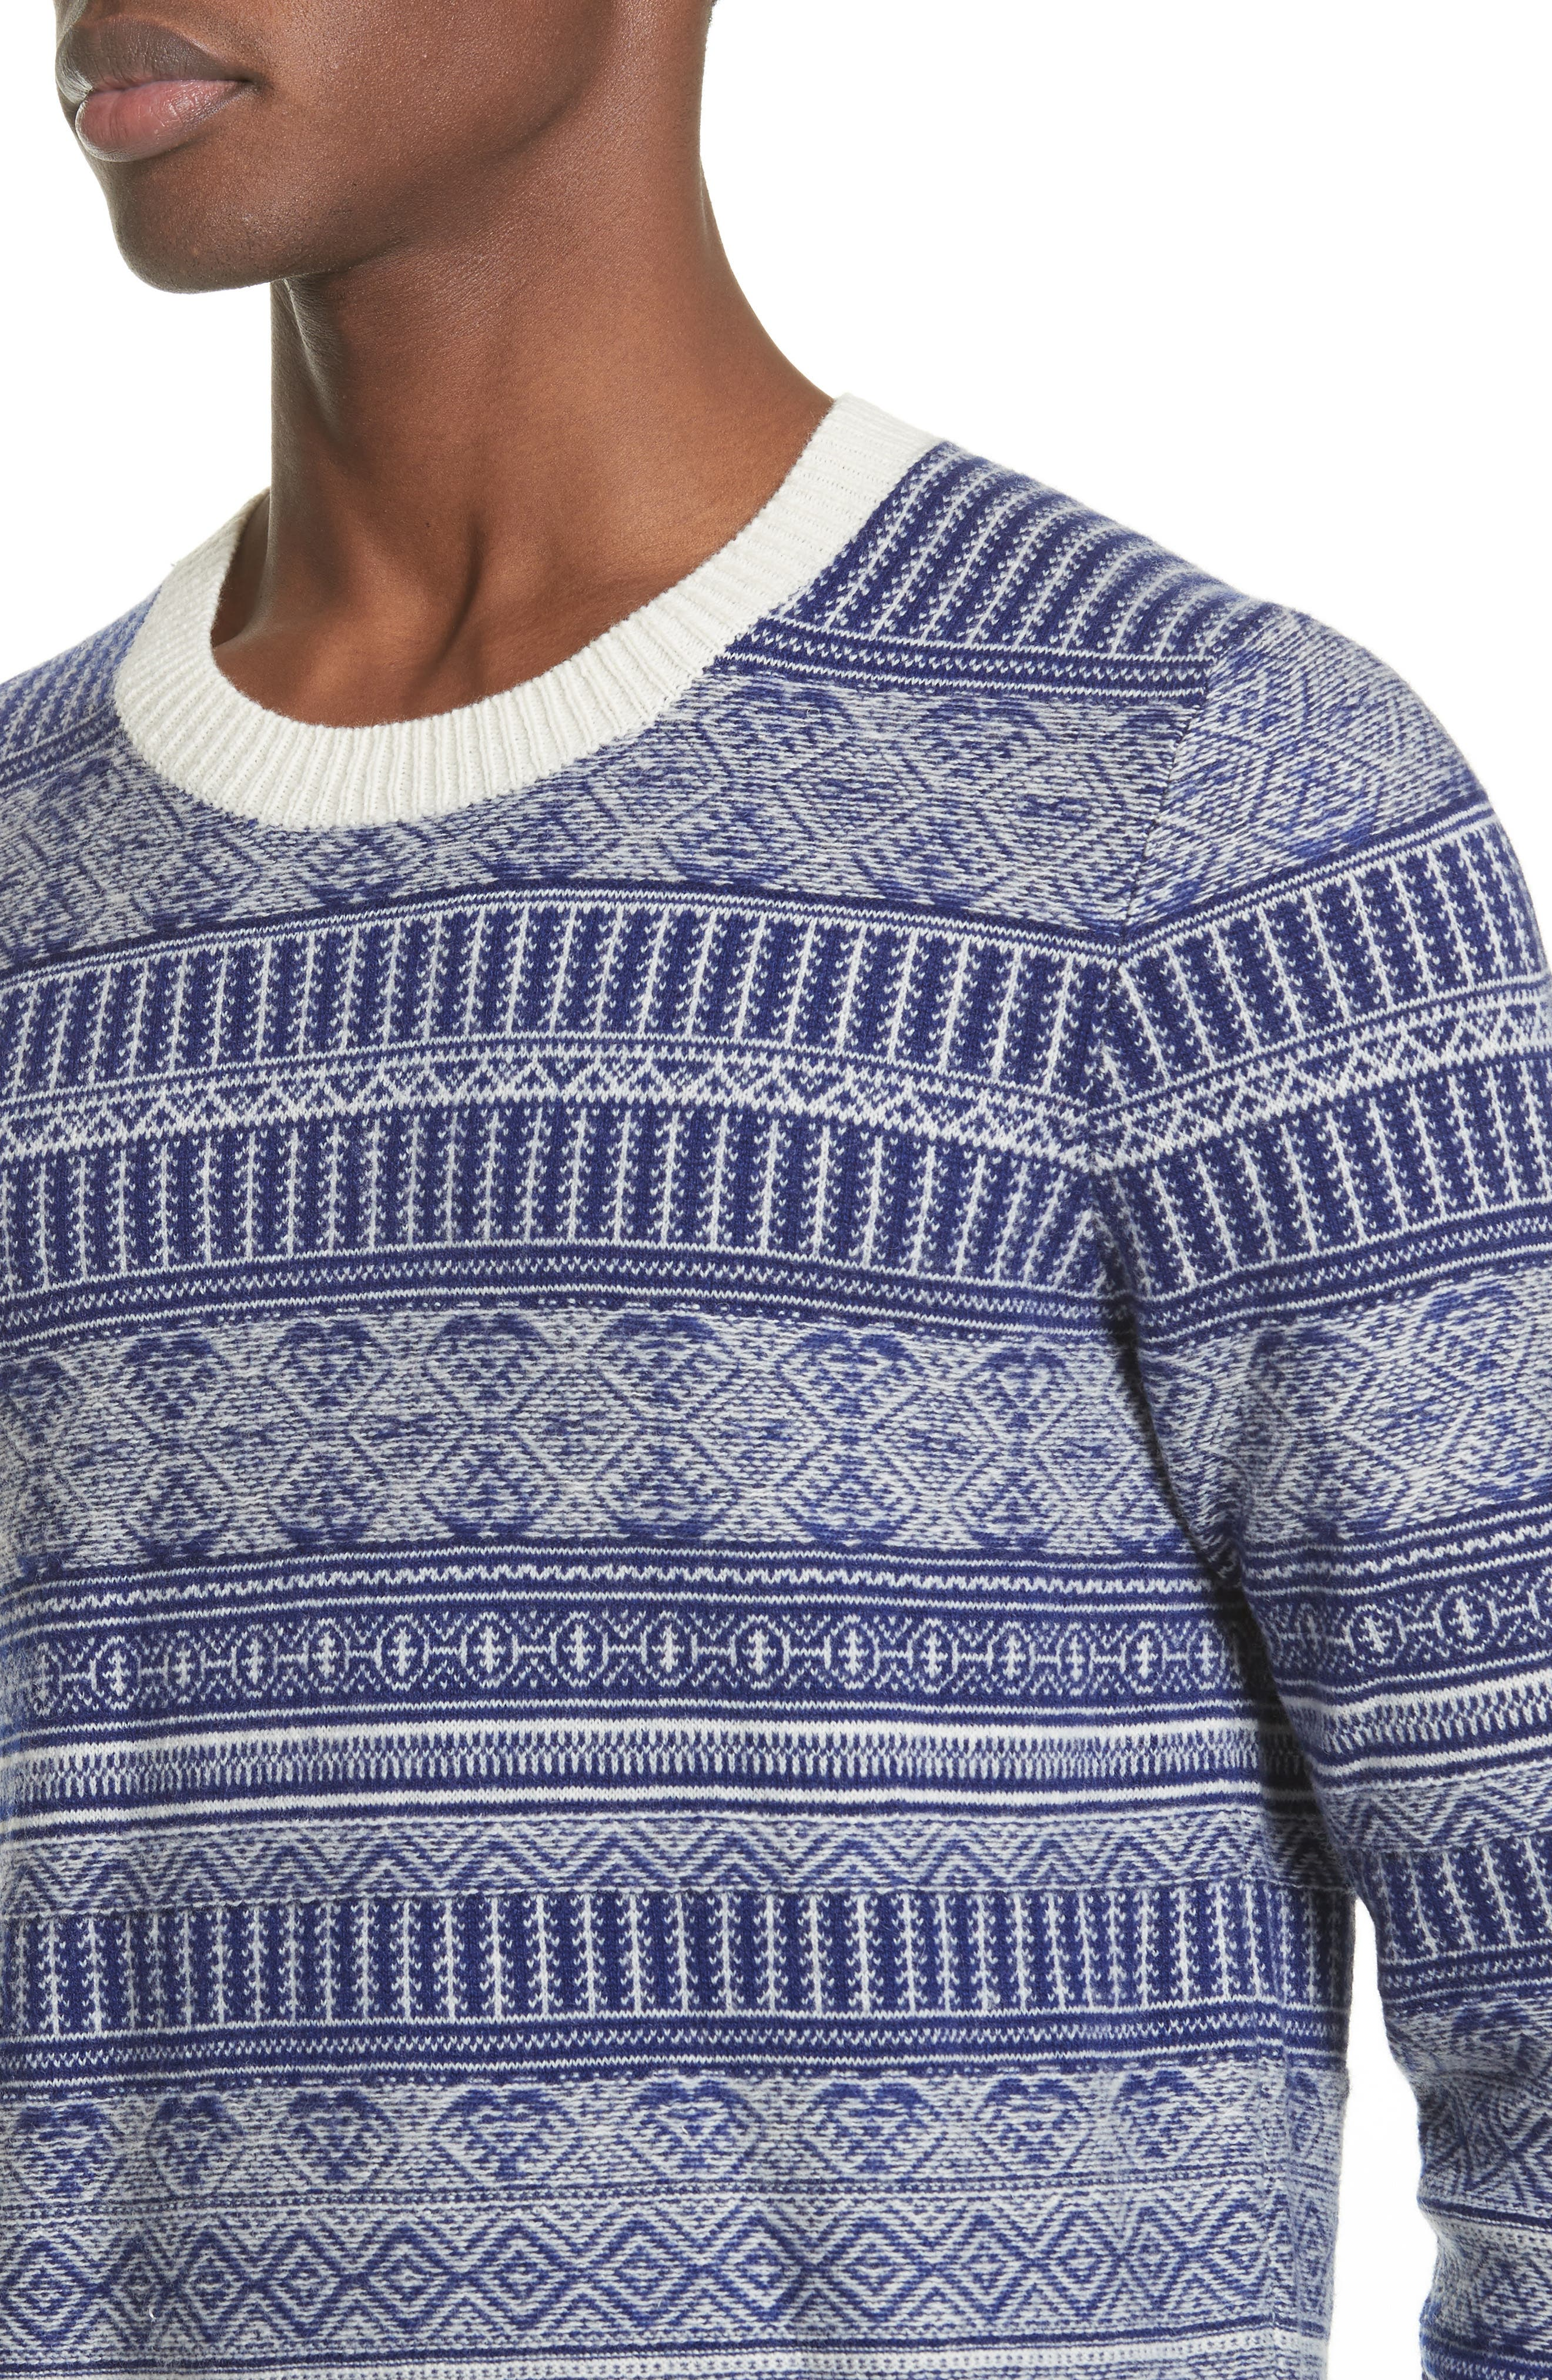 Tredway Wool & Cashmere Sweater,                             Alternate thumbnail 4, color,                             410